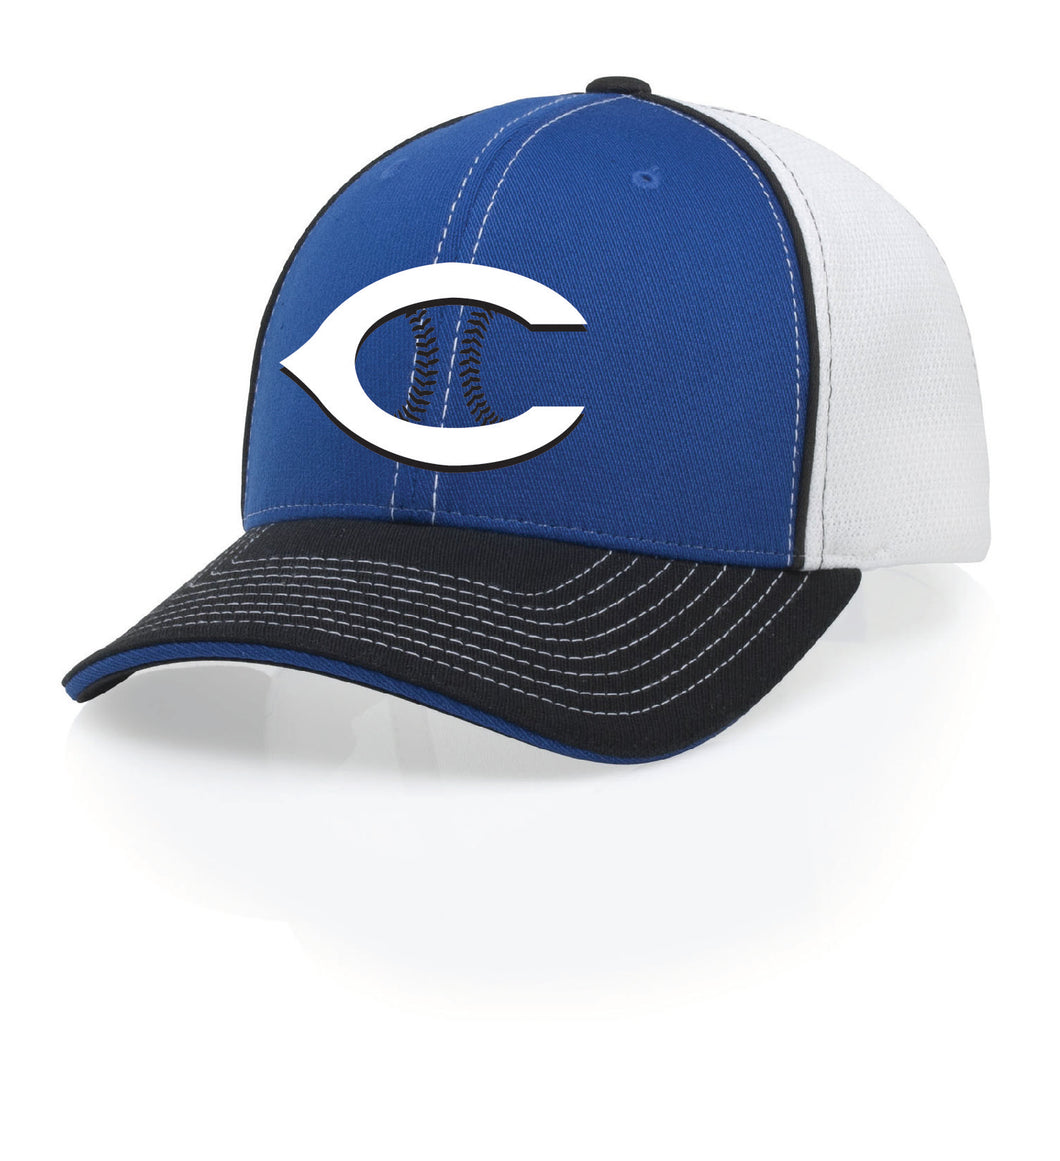 Firth High School Baseball-2019  **MANDATORY** royal/white/black Hat